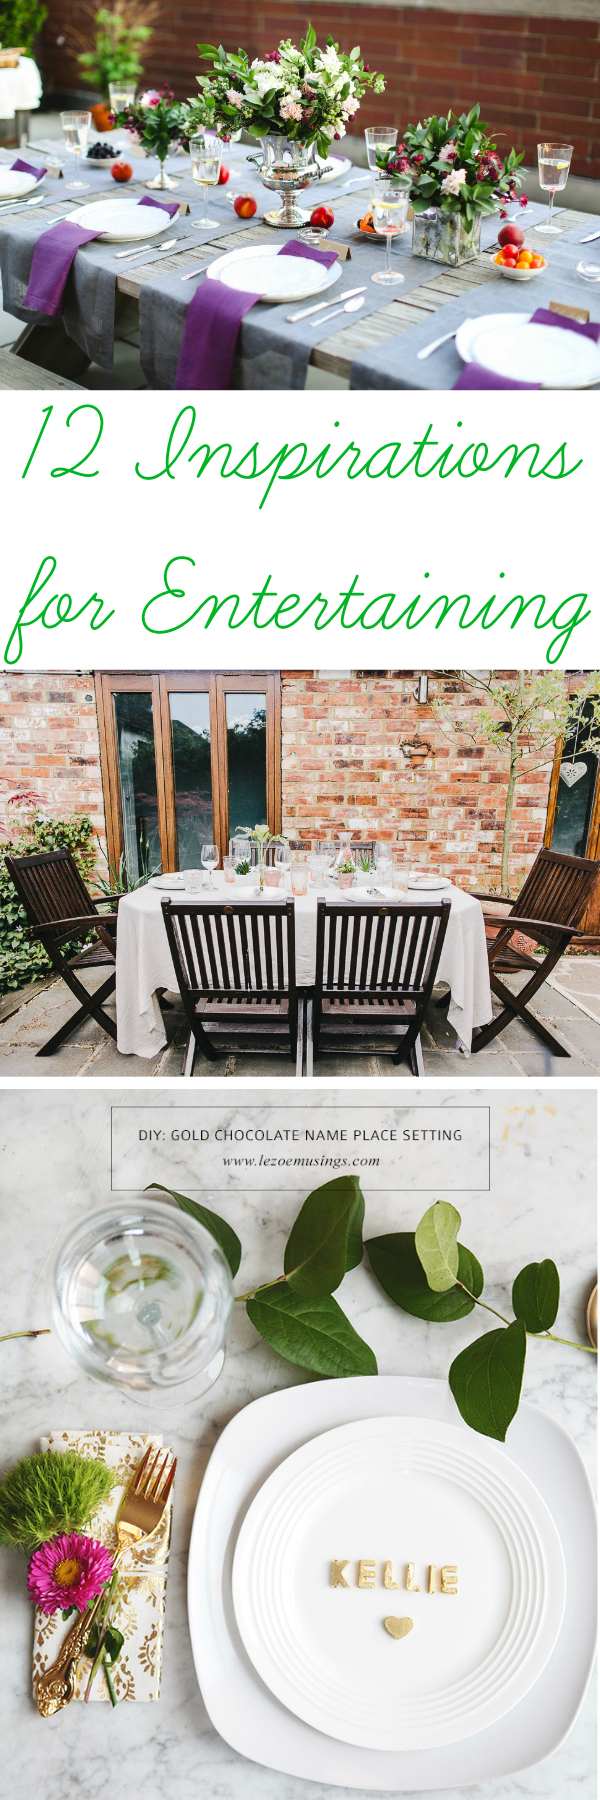 12 Inspirations for Entertaining: The best entertaining tips, parties and crafts from around the web!